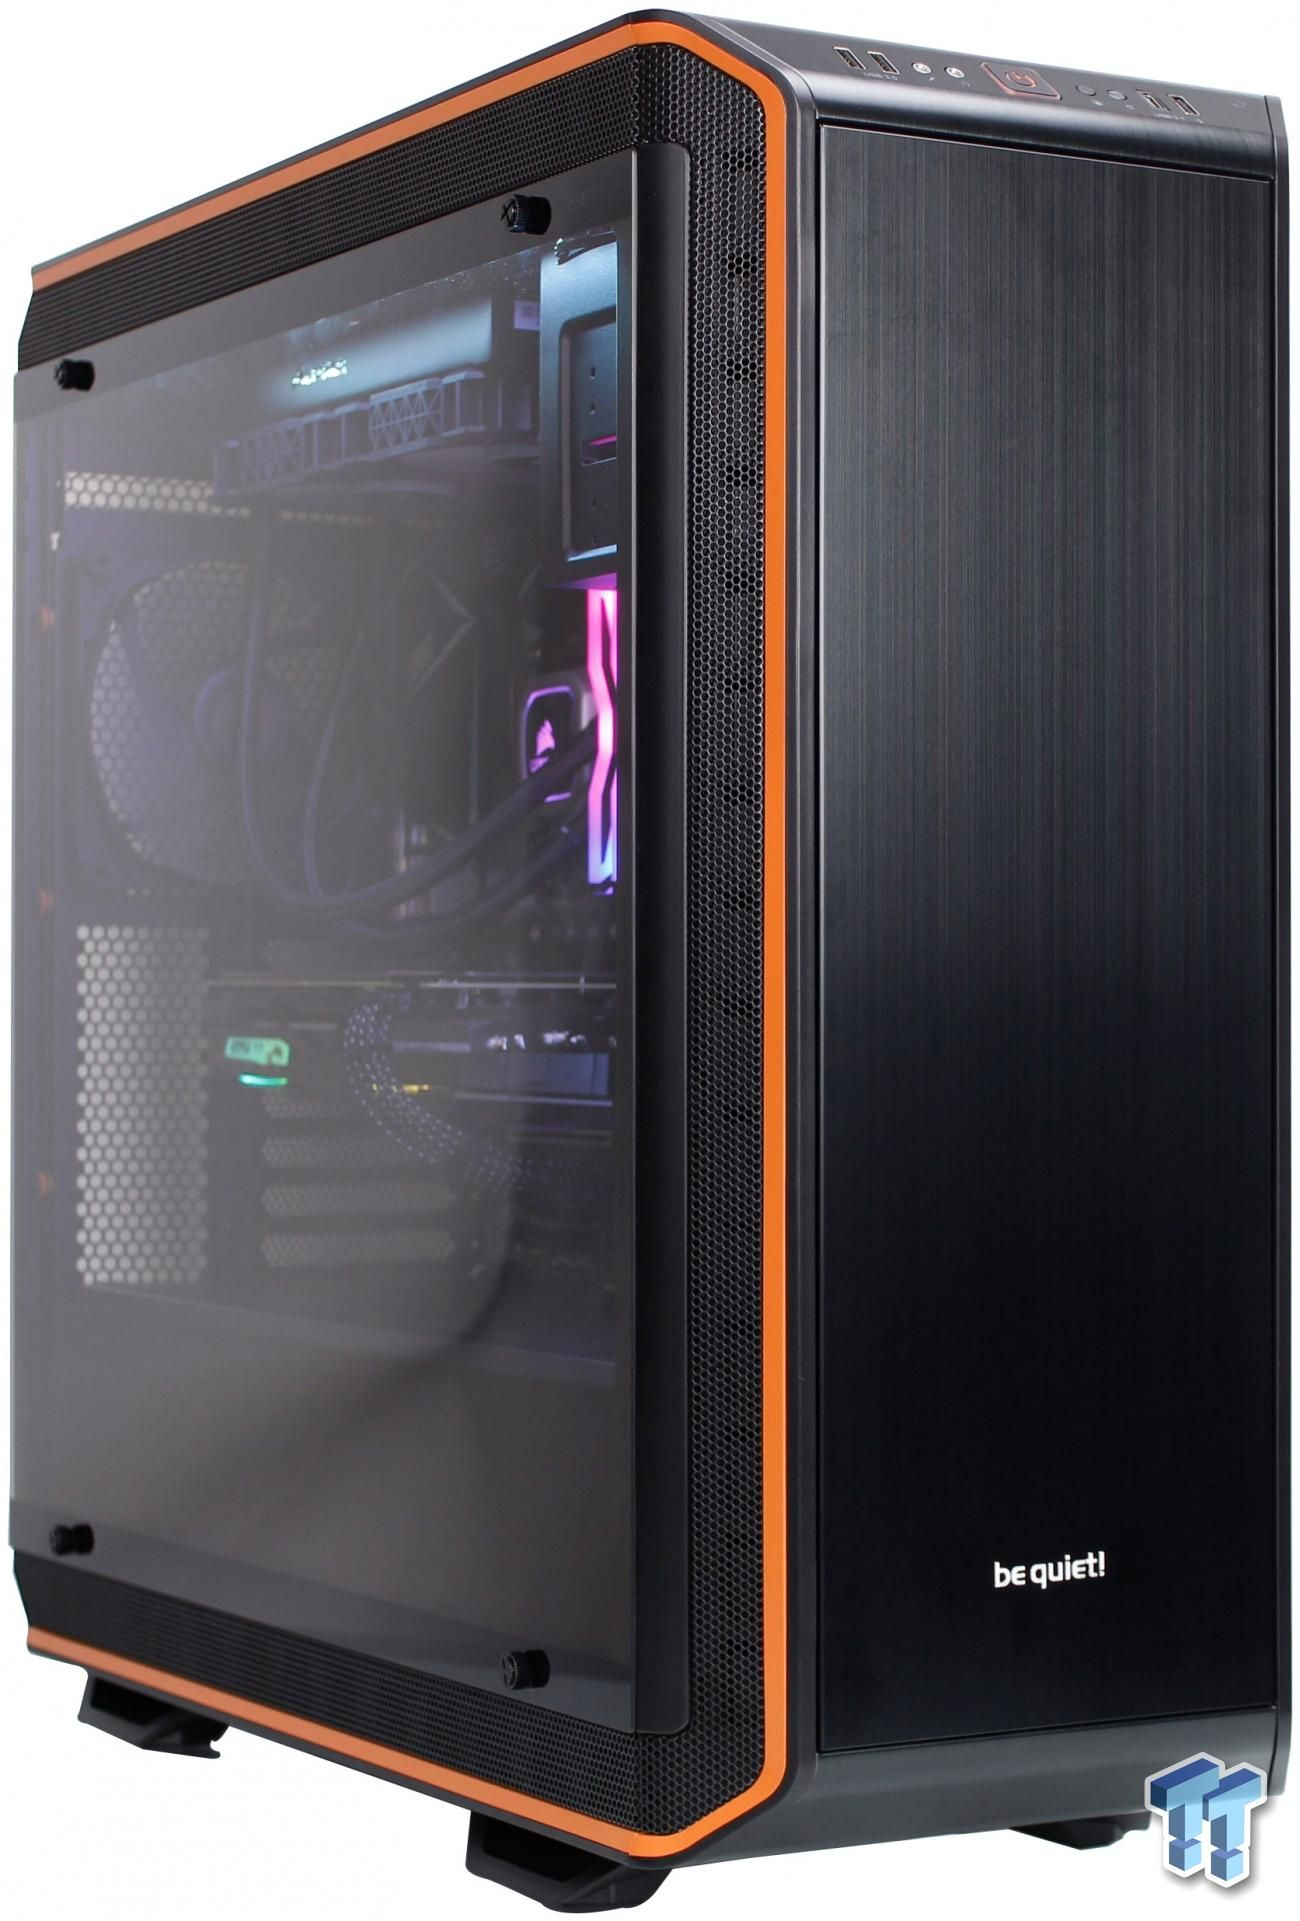 Be Quiet Dark Base Pro 900 Rev 2 Full Tower Chassis Review Quiet Tower Mini Itx